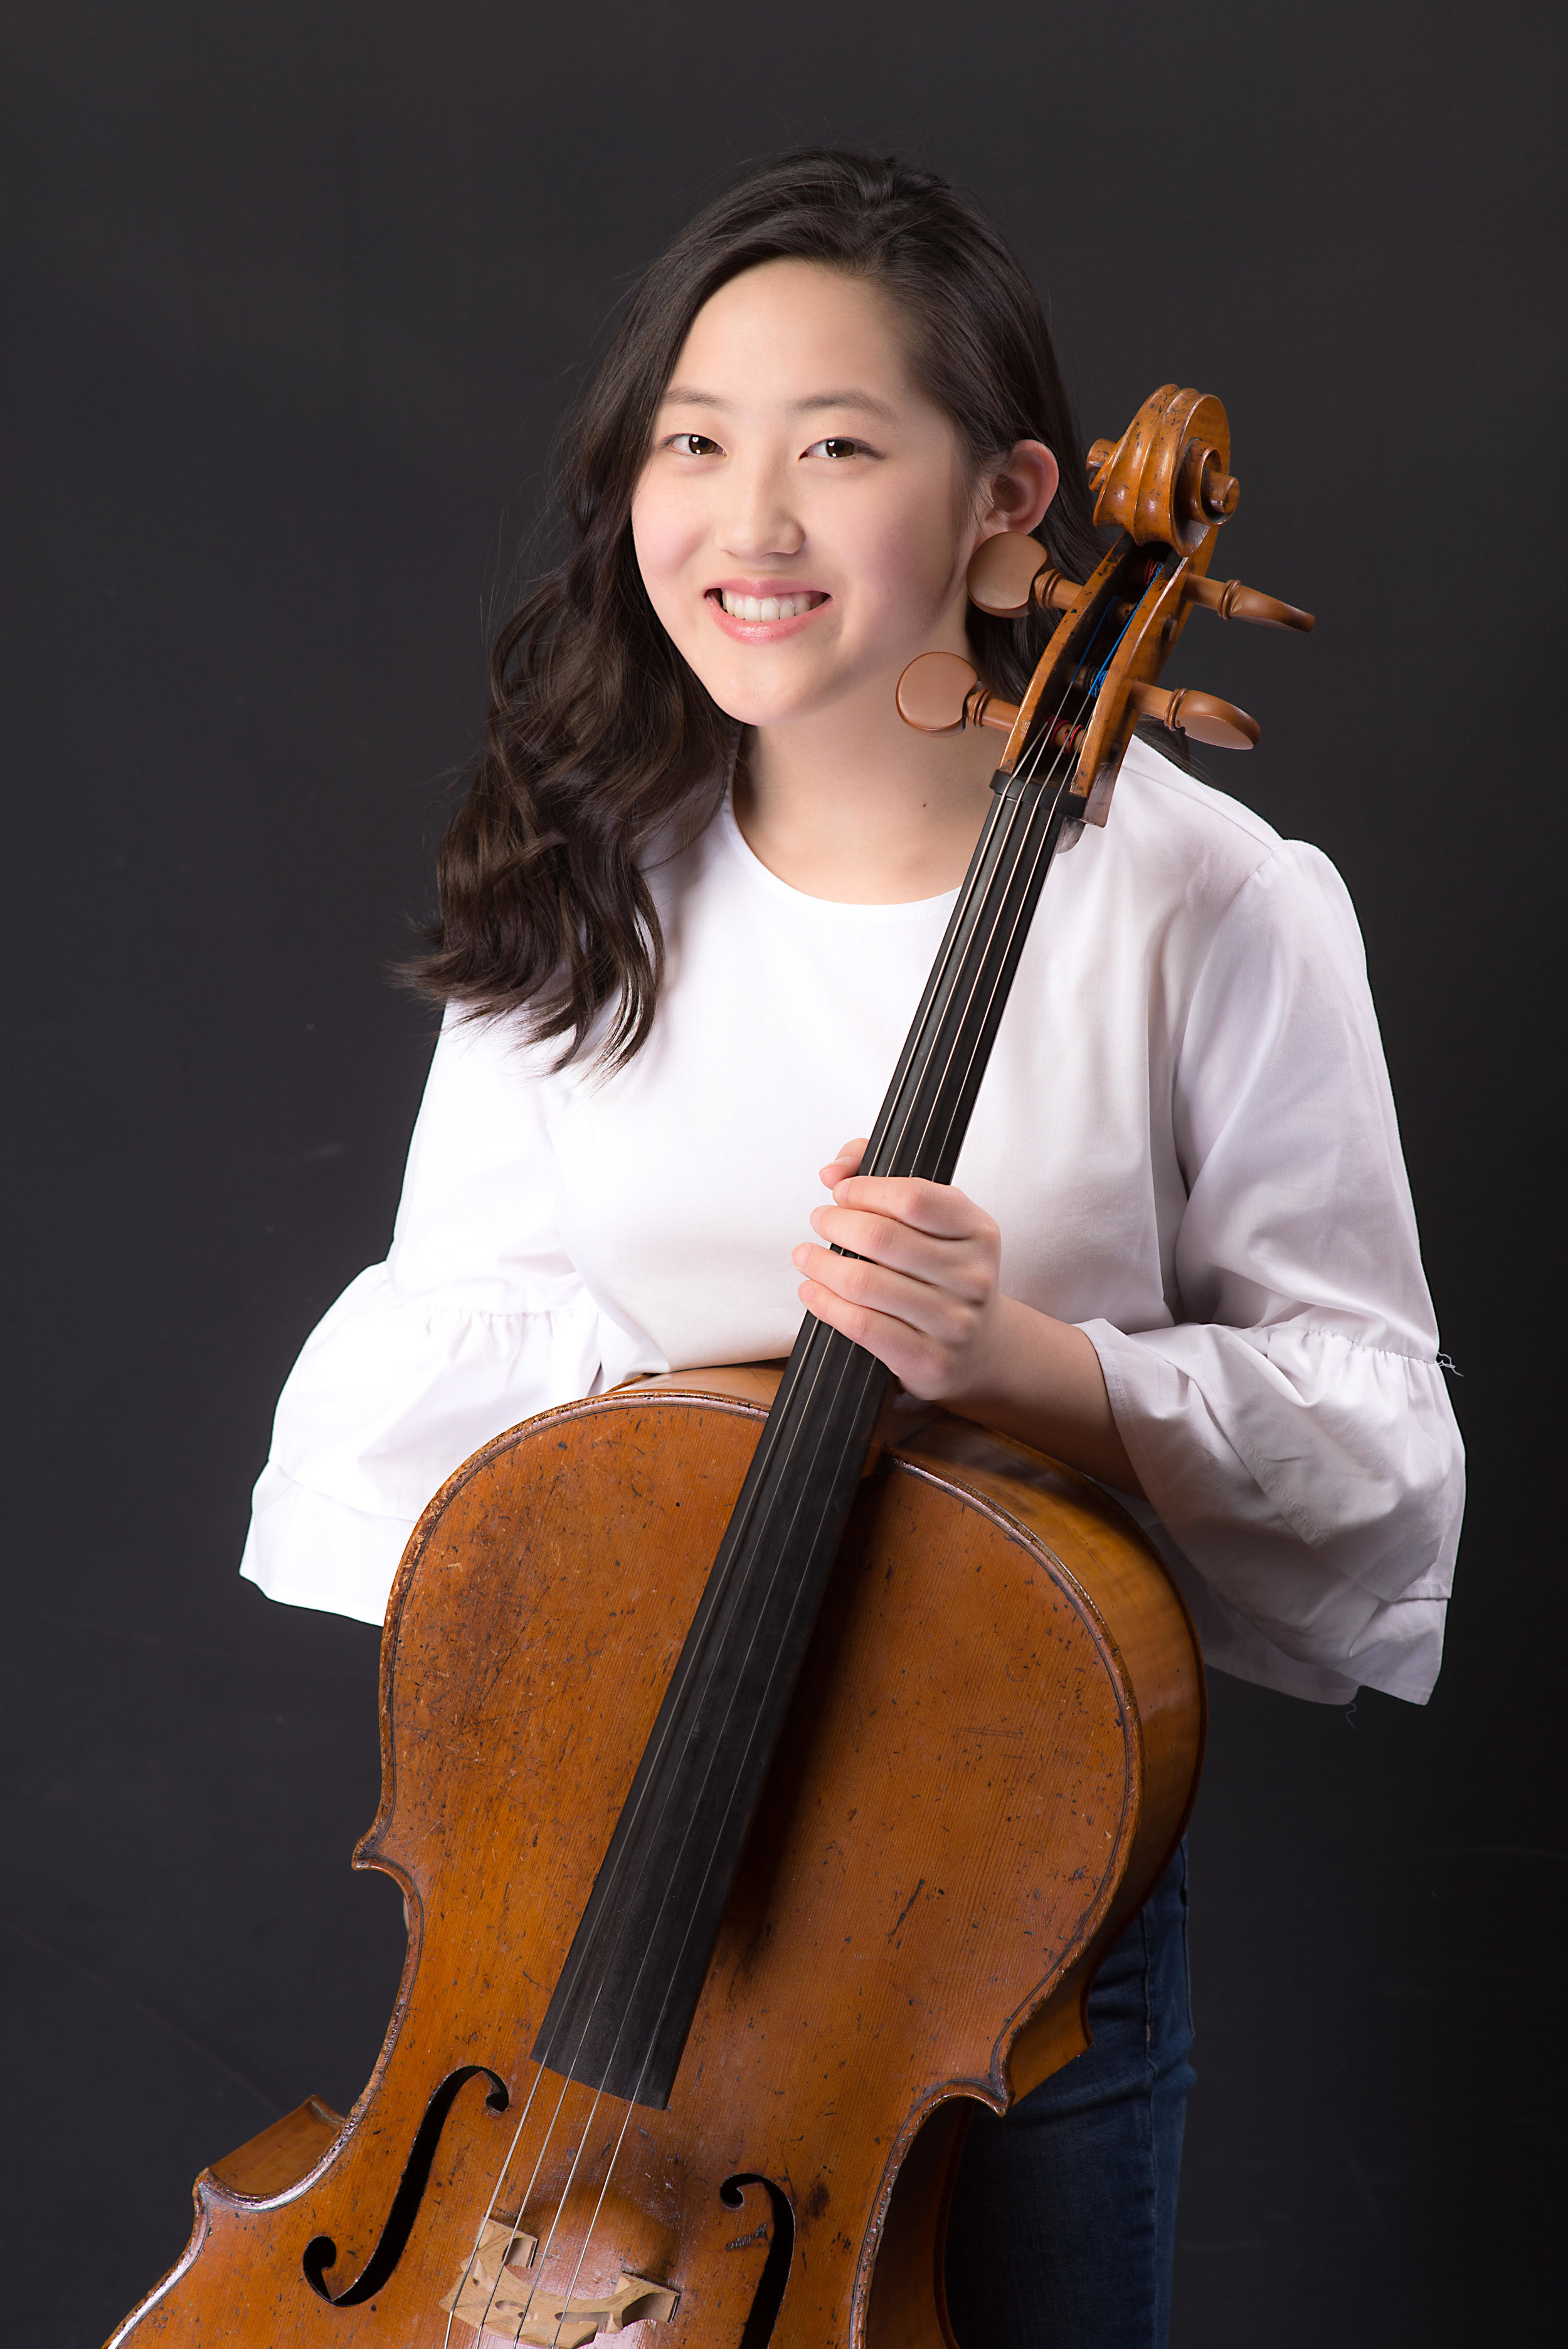 1st Prize    Chelsie Lim , age 14, began her cello studies at age 8 and is currently studying with Clara Minhye Kim in the Pre-College division at The Juilliard School of Music. She is the first prize winner of numerous competitions, including the New York International Music Competition (2014) and the YWCA of Queens New York Music Competition (2015), among others. She was the winner of the Camerata Artists International Concerto Competition (2017), as well as the Bravura Philharmonic's 10th annual Young Artists Concerto Competition (2018), both of which she was rewarded opportunities to perform with an orchestra. She was a finalist of the Monmouth Symphony Orchestra's 2017 Goldwasser Concerto Competition and received the 3rd prize. She was a semi-finalist of the International Tchaikovsky Competition for Young Musicians in Astana, Kazakhstan (2017). Chelsie was a principal cellist of the Pre-College Symphony (2018), and was recently accepted into the Perlman Music Program for the summer of 2019.